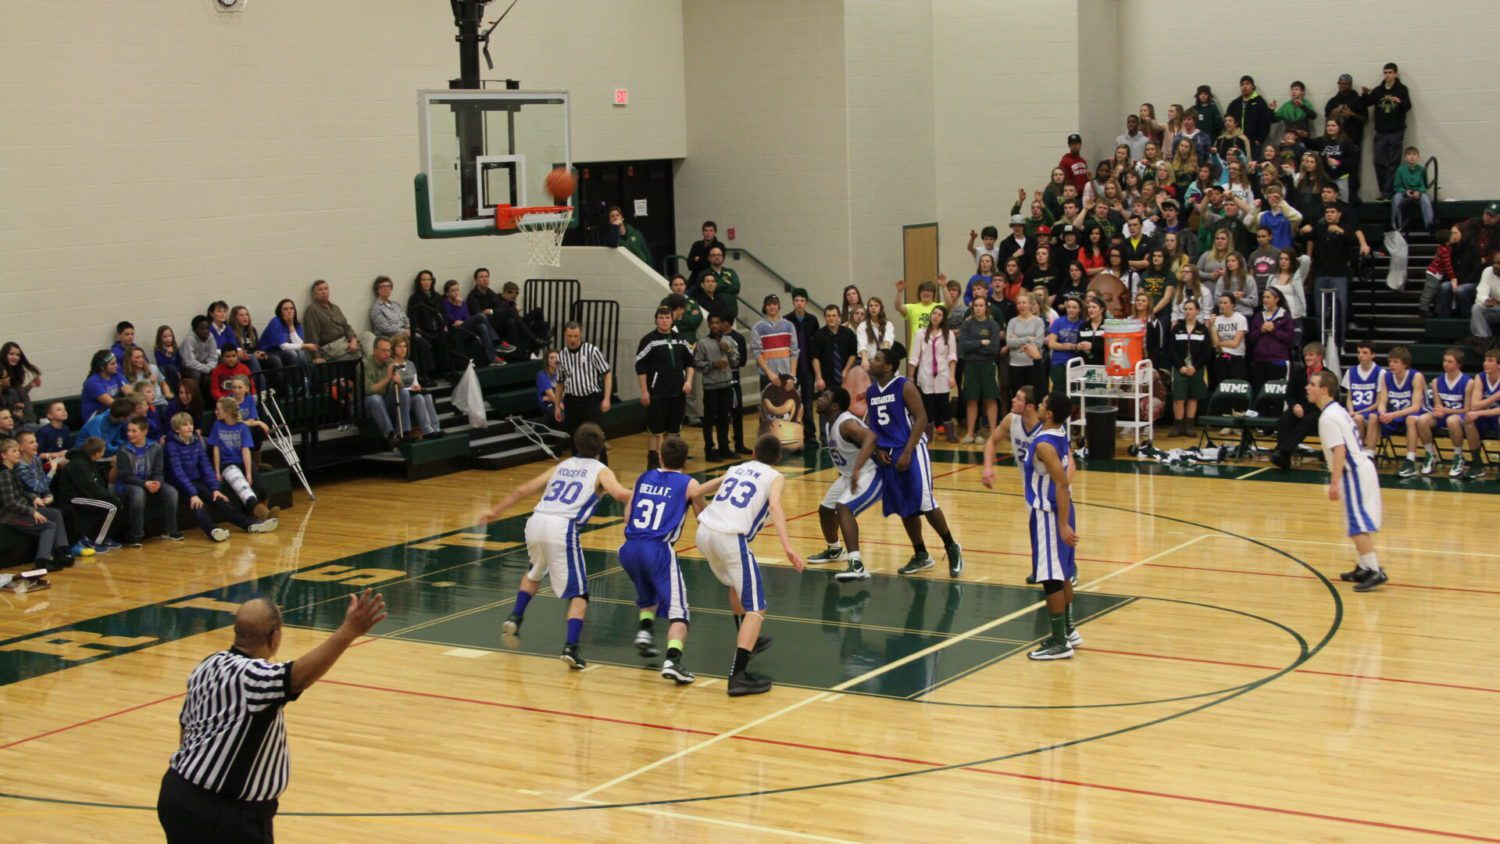 Highlights from Western Michigan Christian's battle against Muskegon Catholic Central [VIDEO]